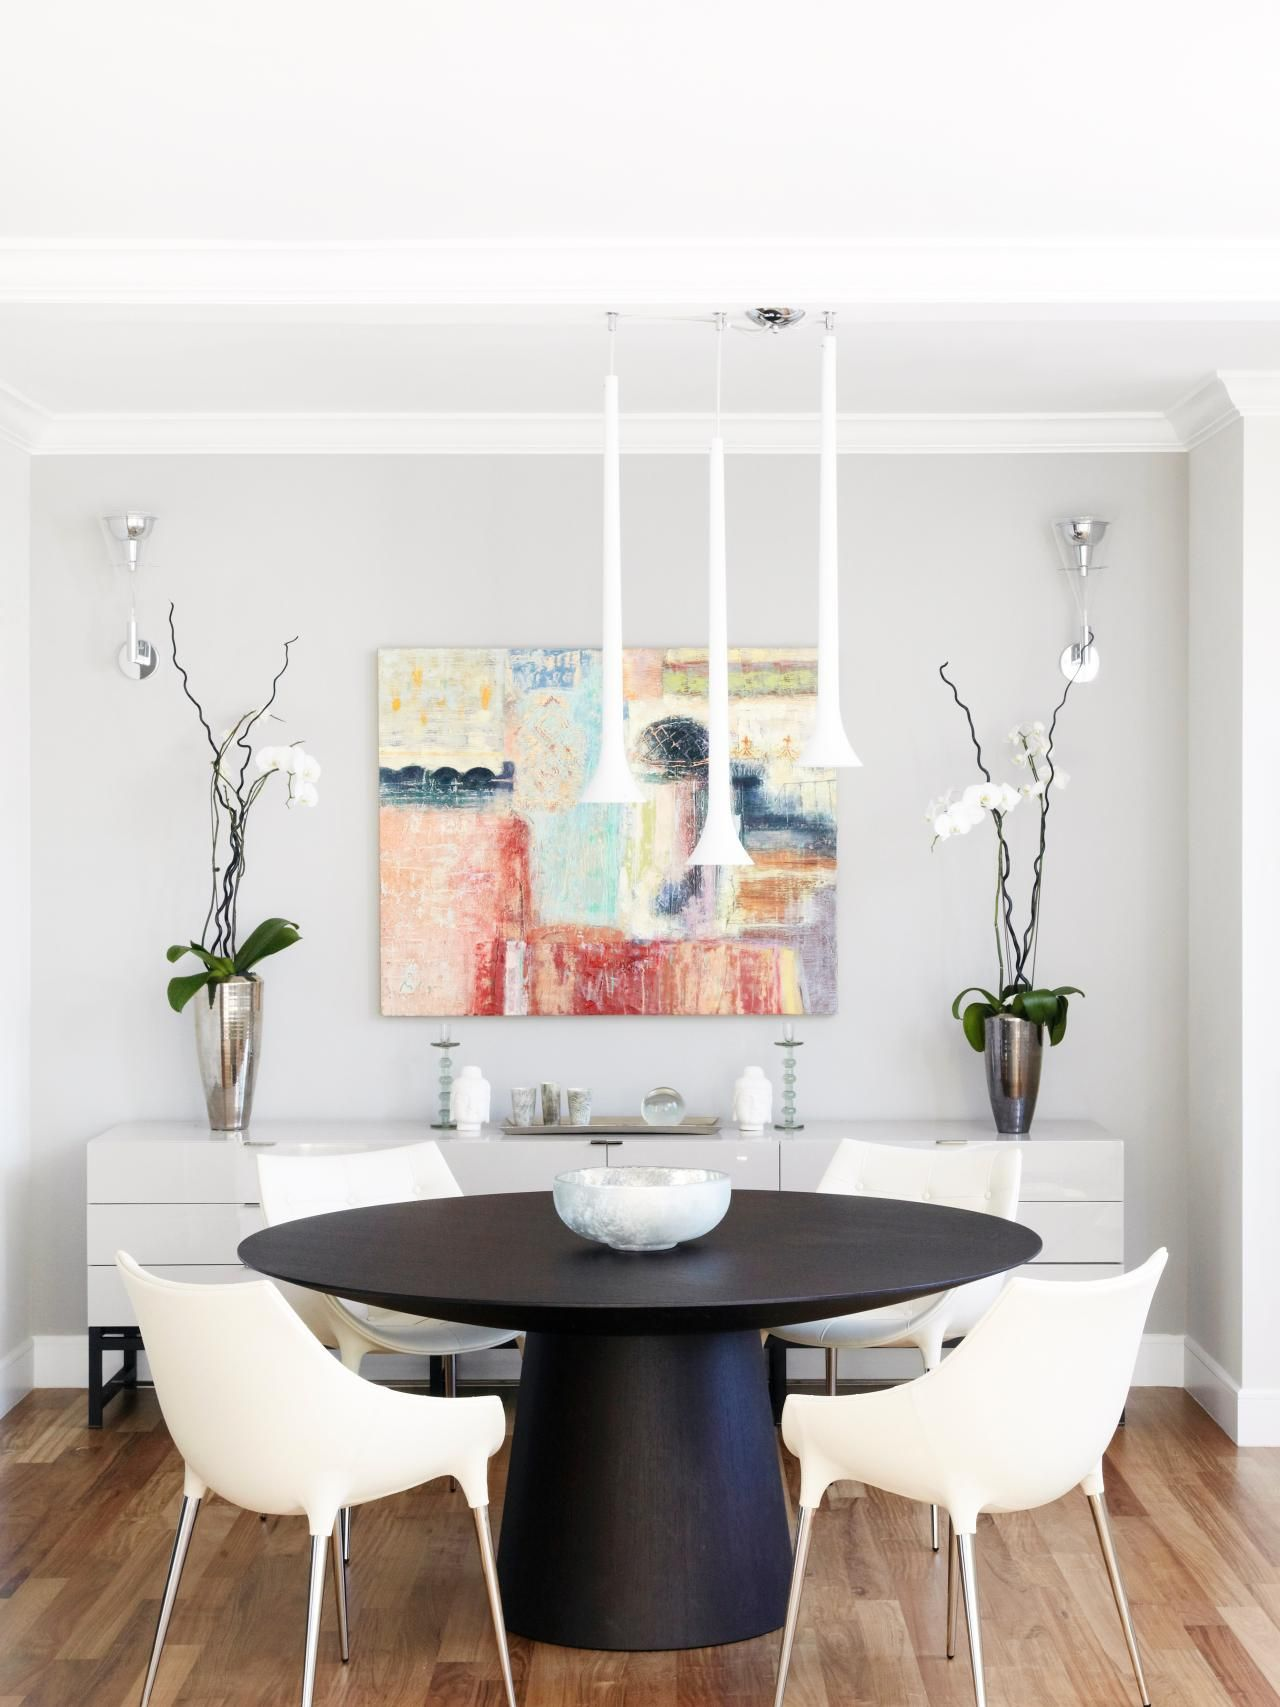 In This Modern Dining Room, Colorful Abstract Art Takes Center Stage. A  Small Black Round Table Anchors The Room While Four White Molded Plastic  Chairs ...